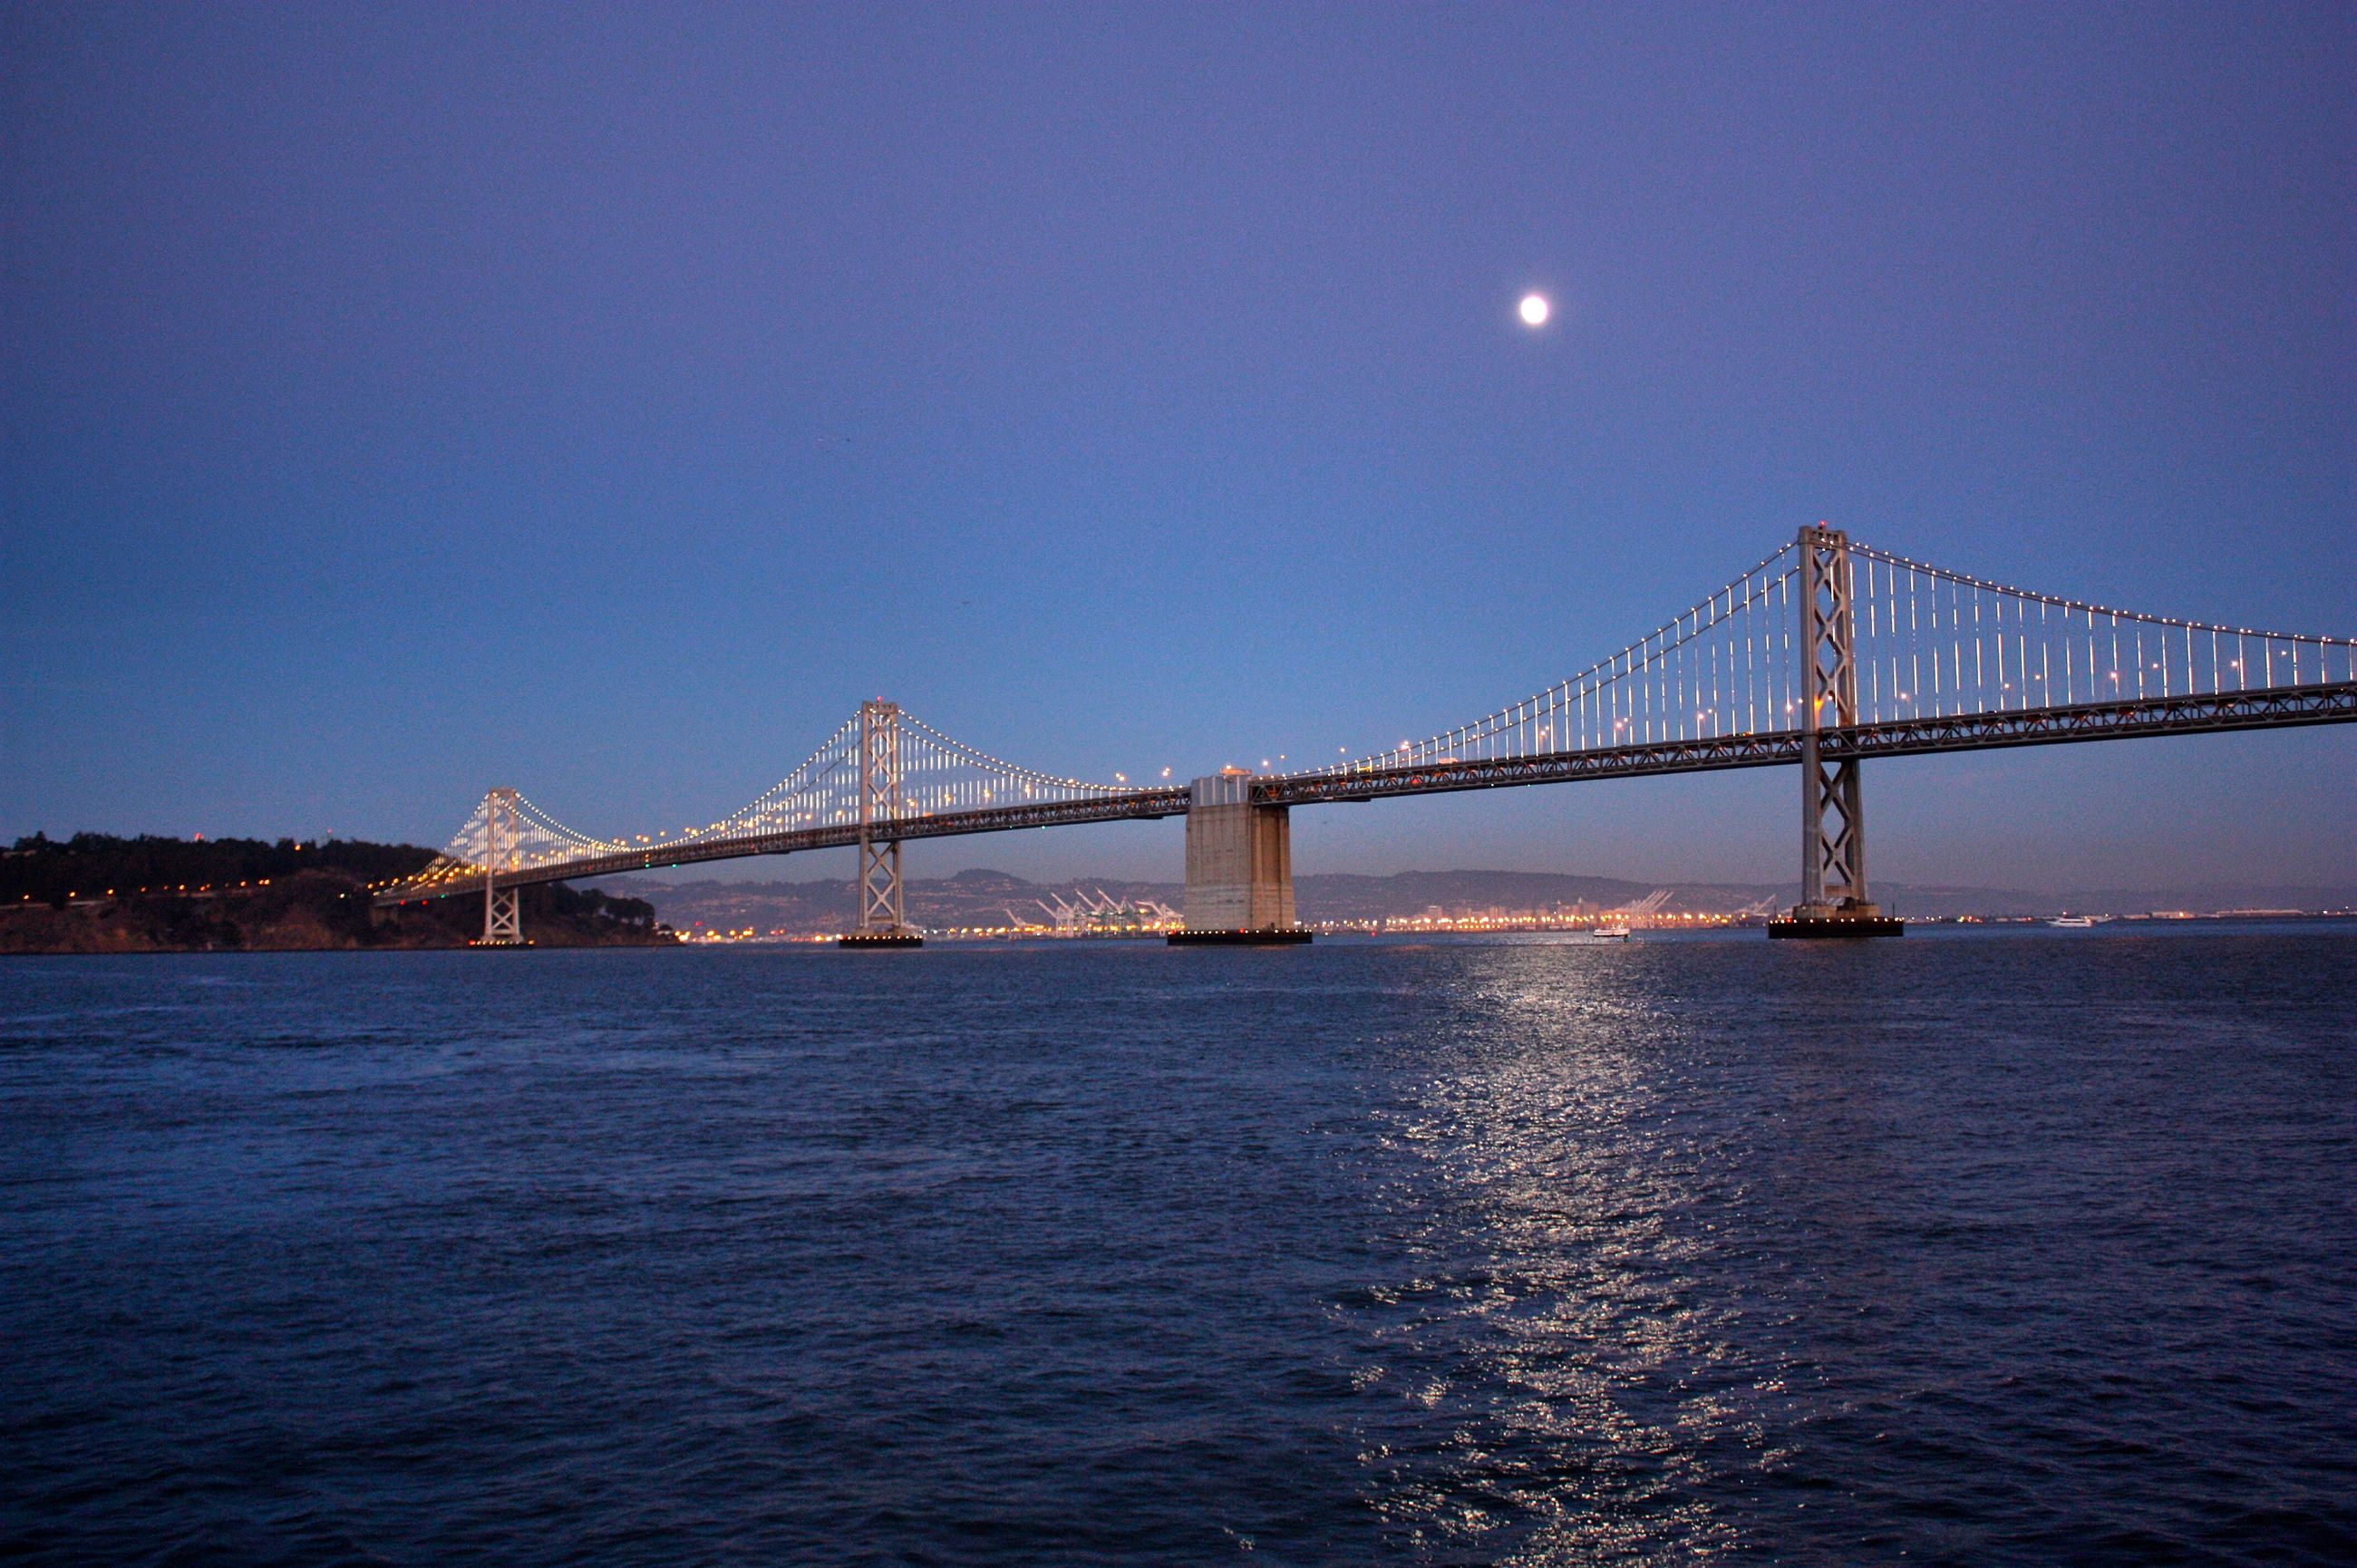 connection, water, architecture, built structure, bridge - man made structure, waterfront, engineering, sea, suspension bridge, bridge, illuminated, clear sky, river, night, blue, copy space, transportation, rippled, sky, travel destinations